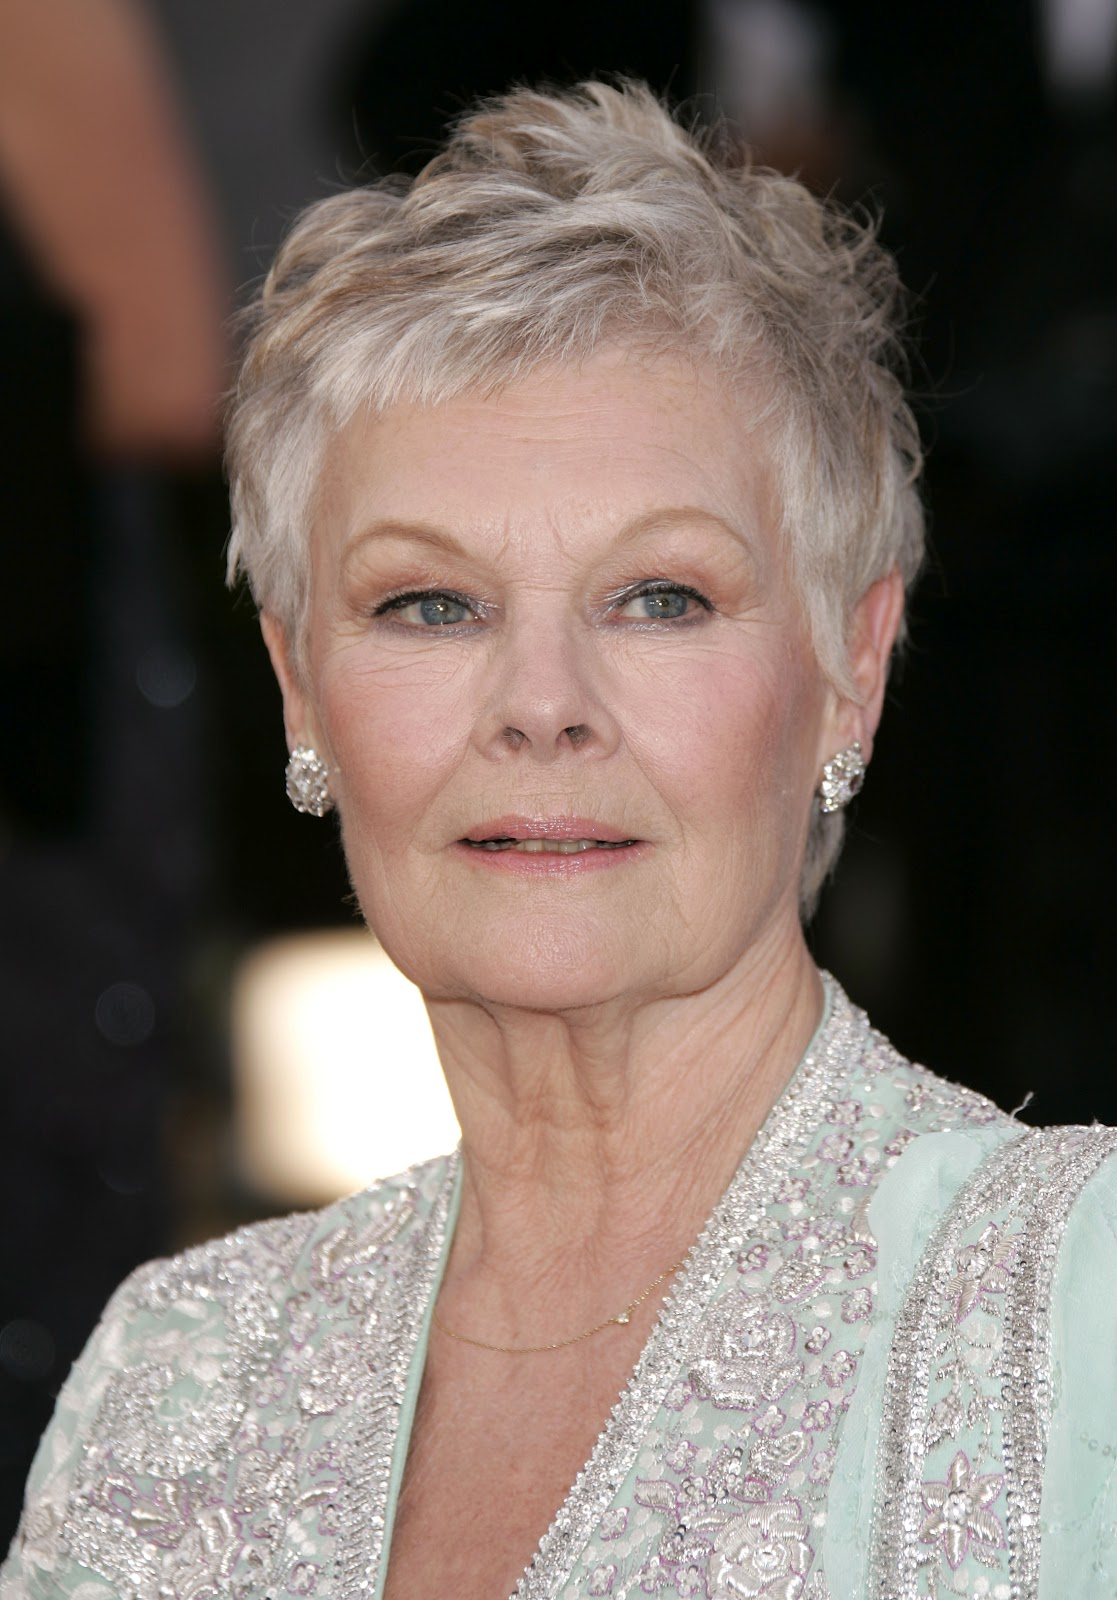 Judi Dench (born 1934) naked (36 foto and video), Ass, Sideboobs, Boobs, braless 2015